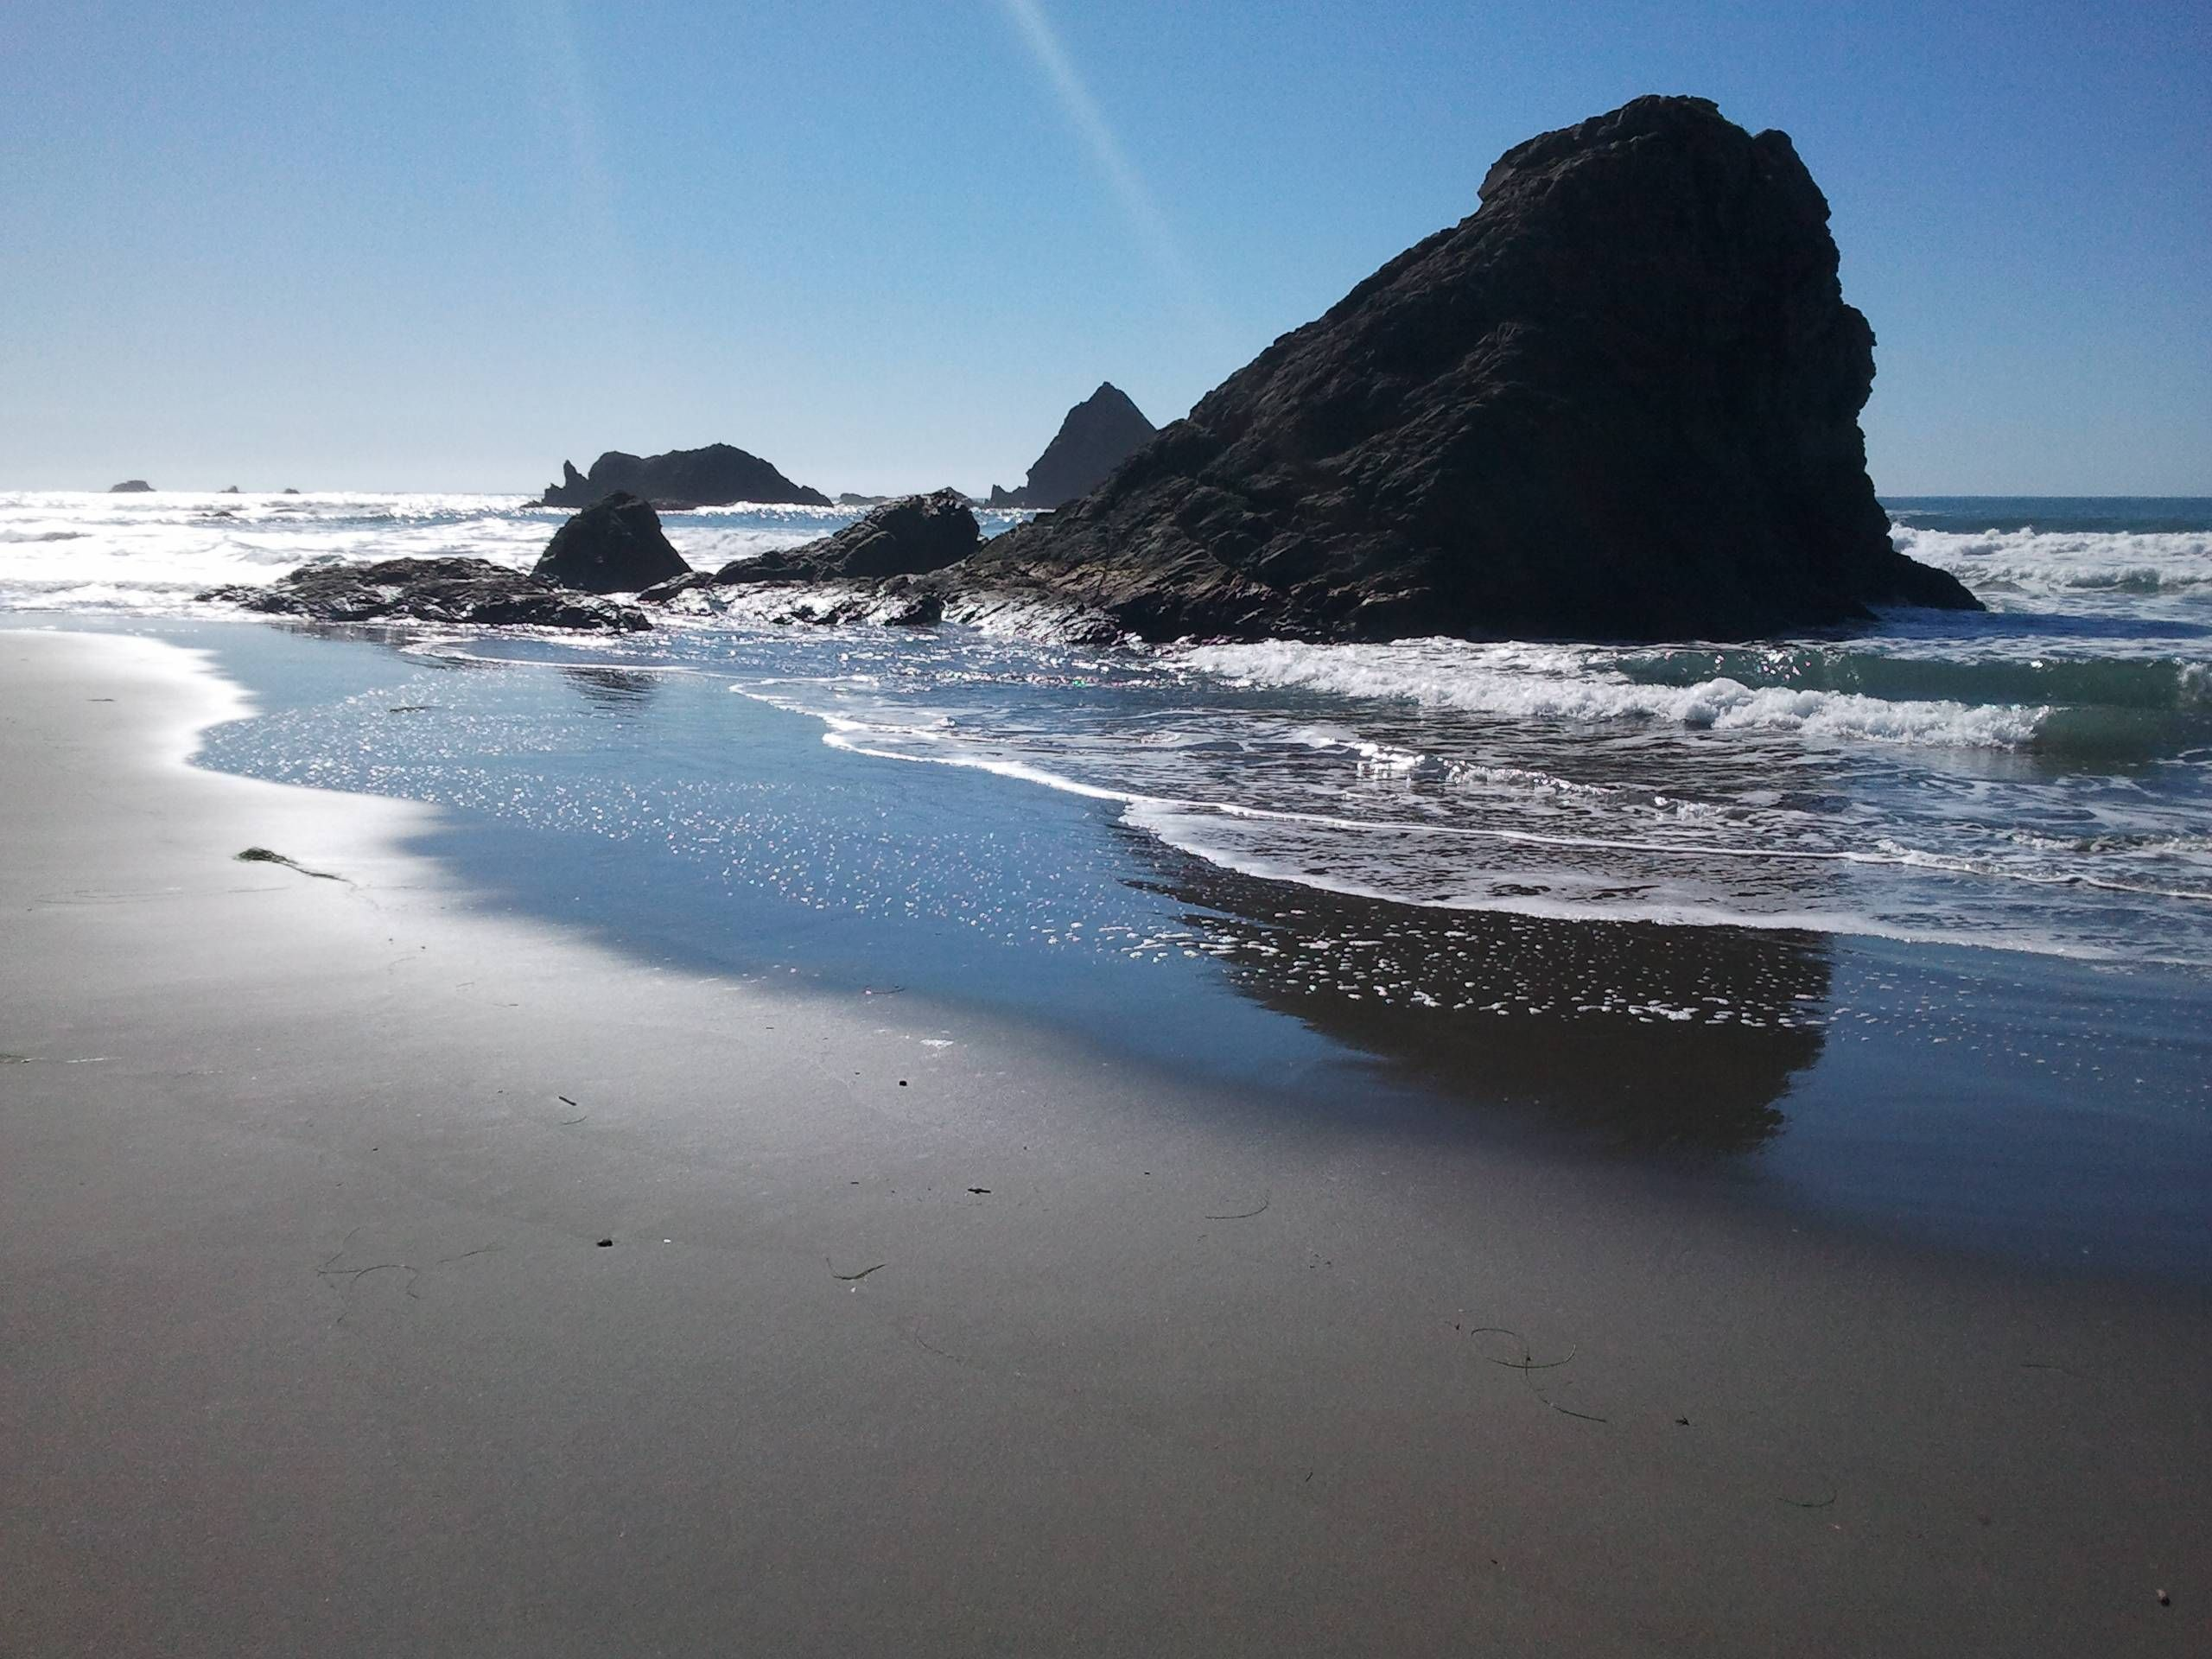 brookings, oregon. harris beach! oh a day at this awesome beach